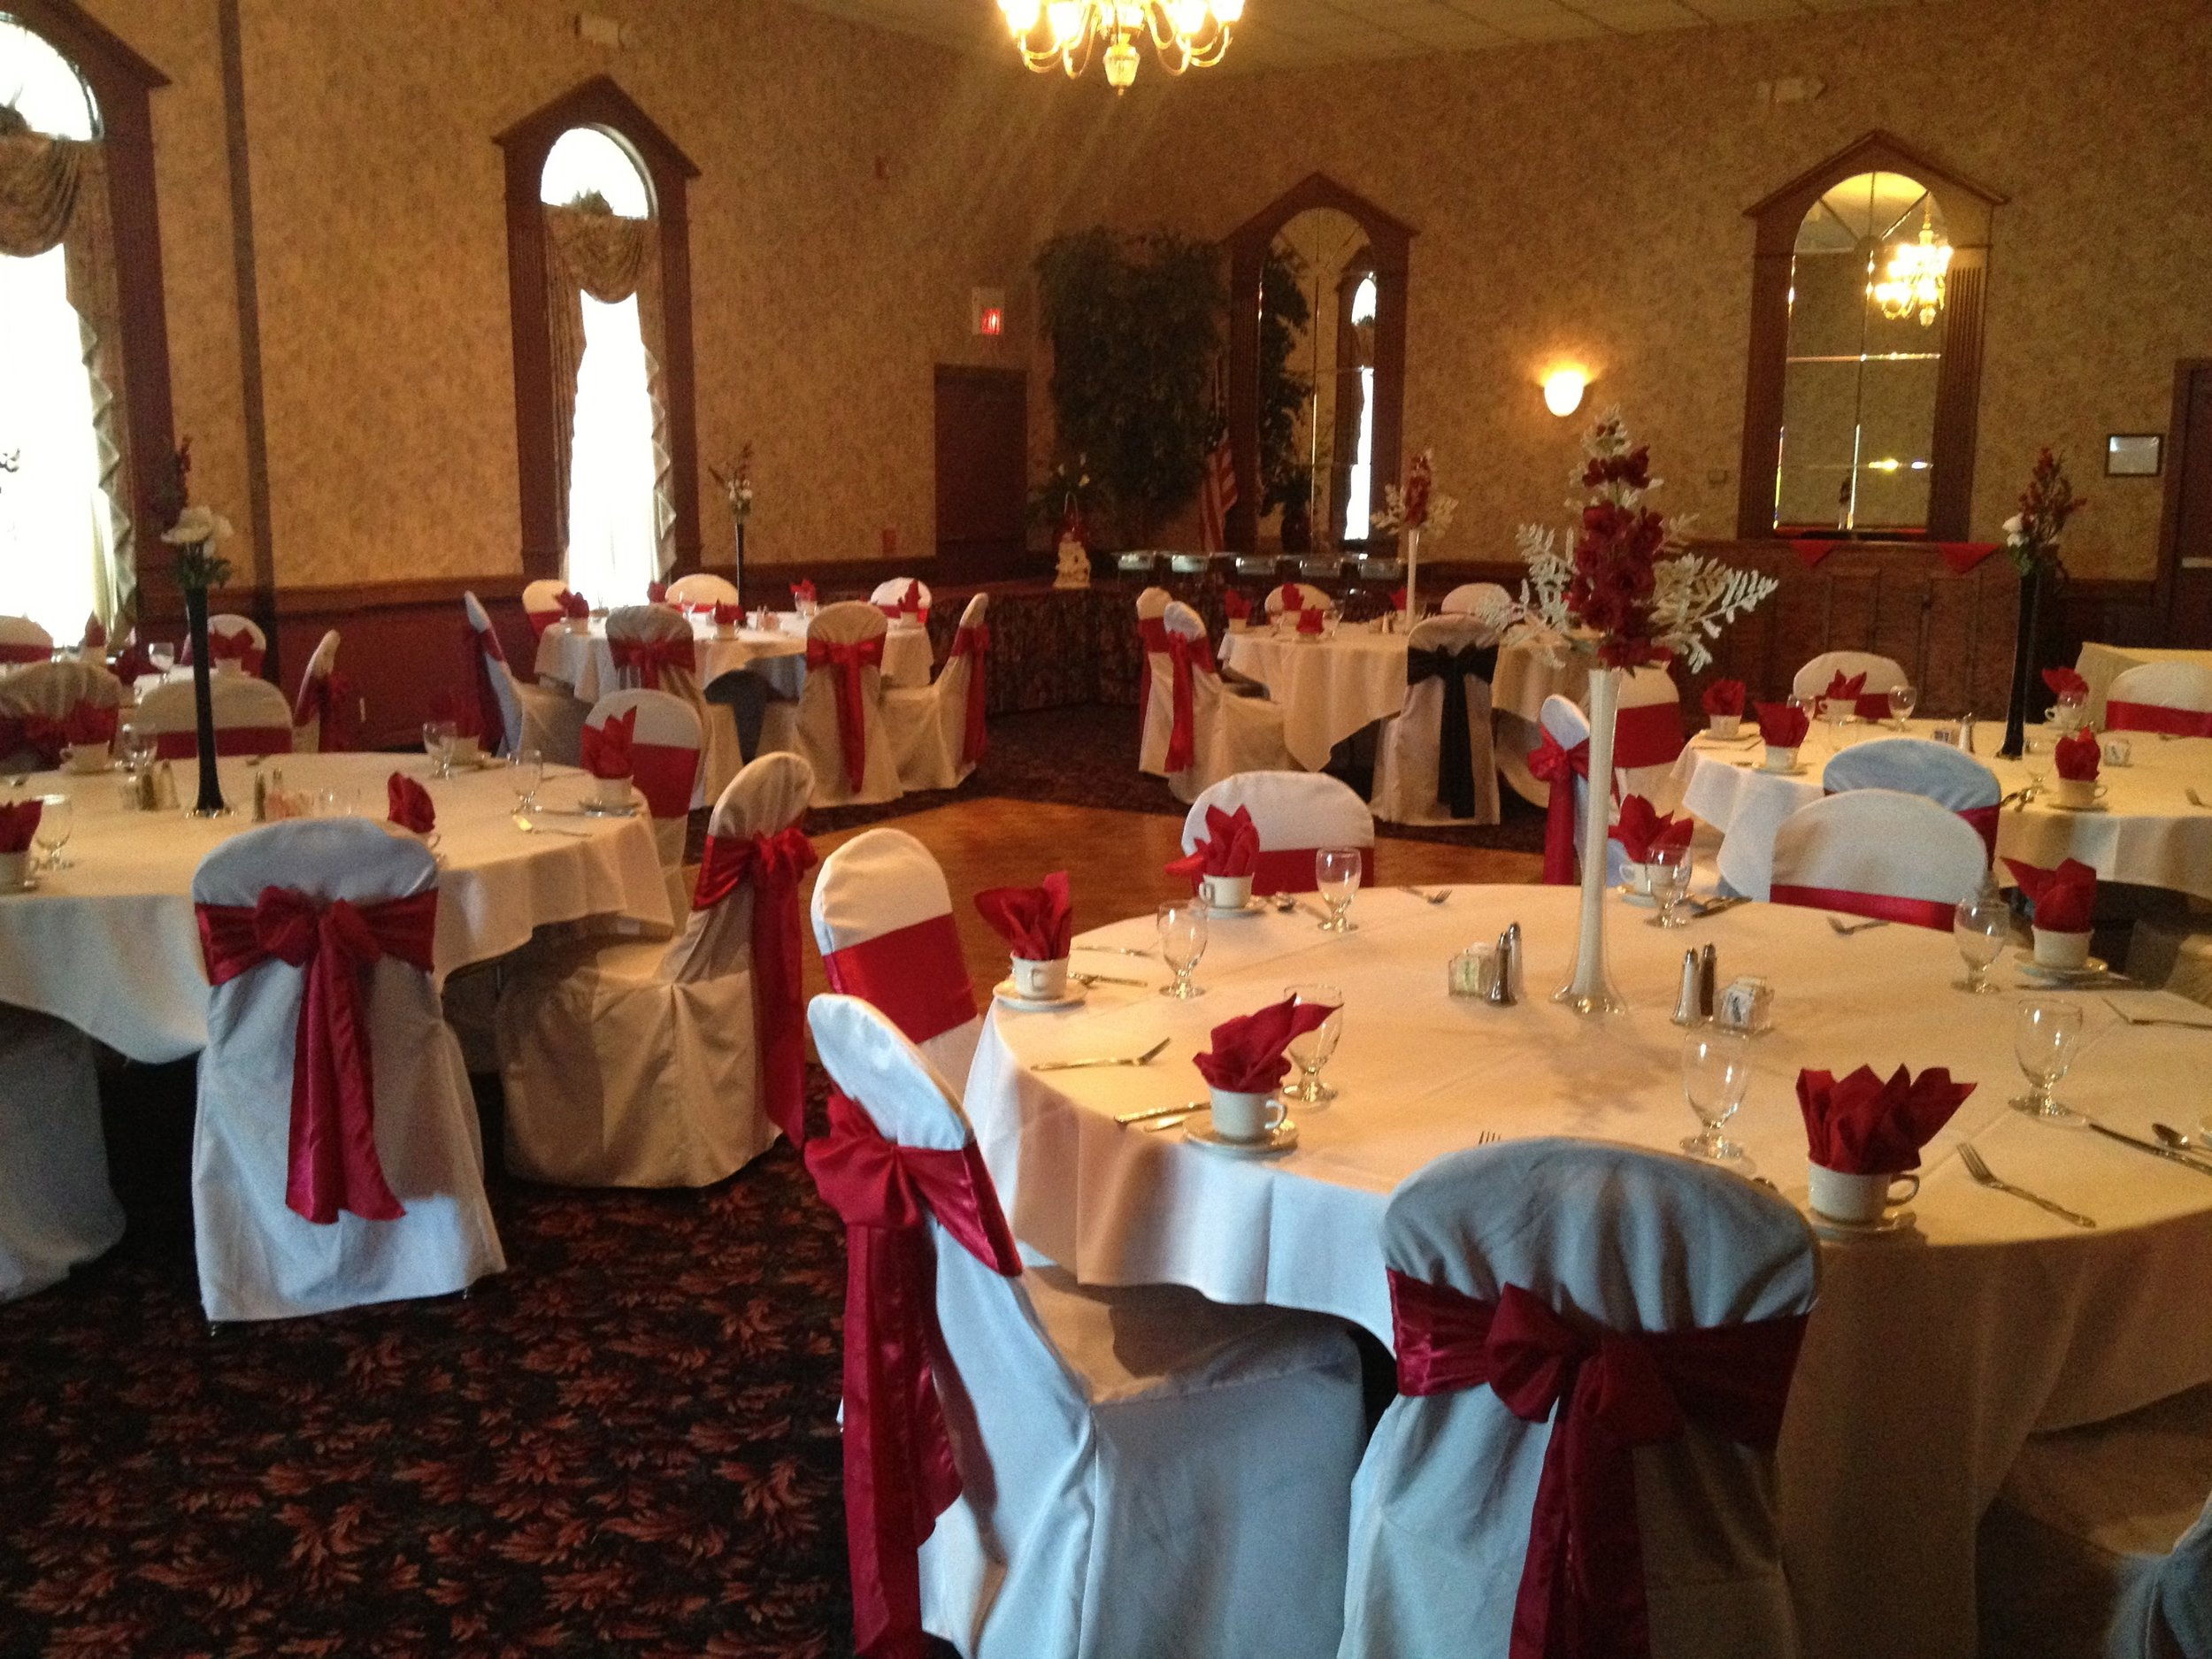 Red and White Wedding at Our Reception Hall